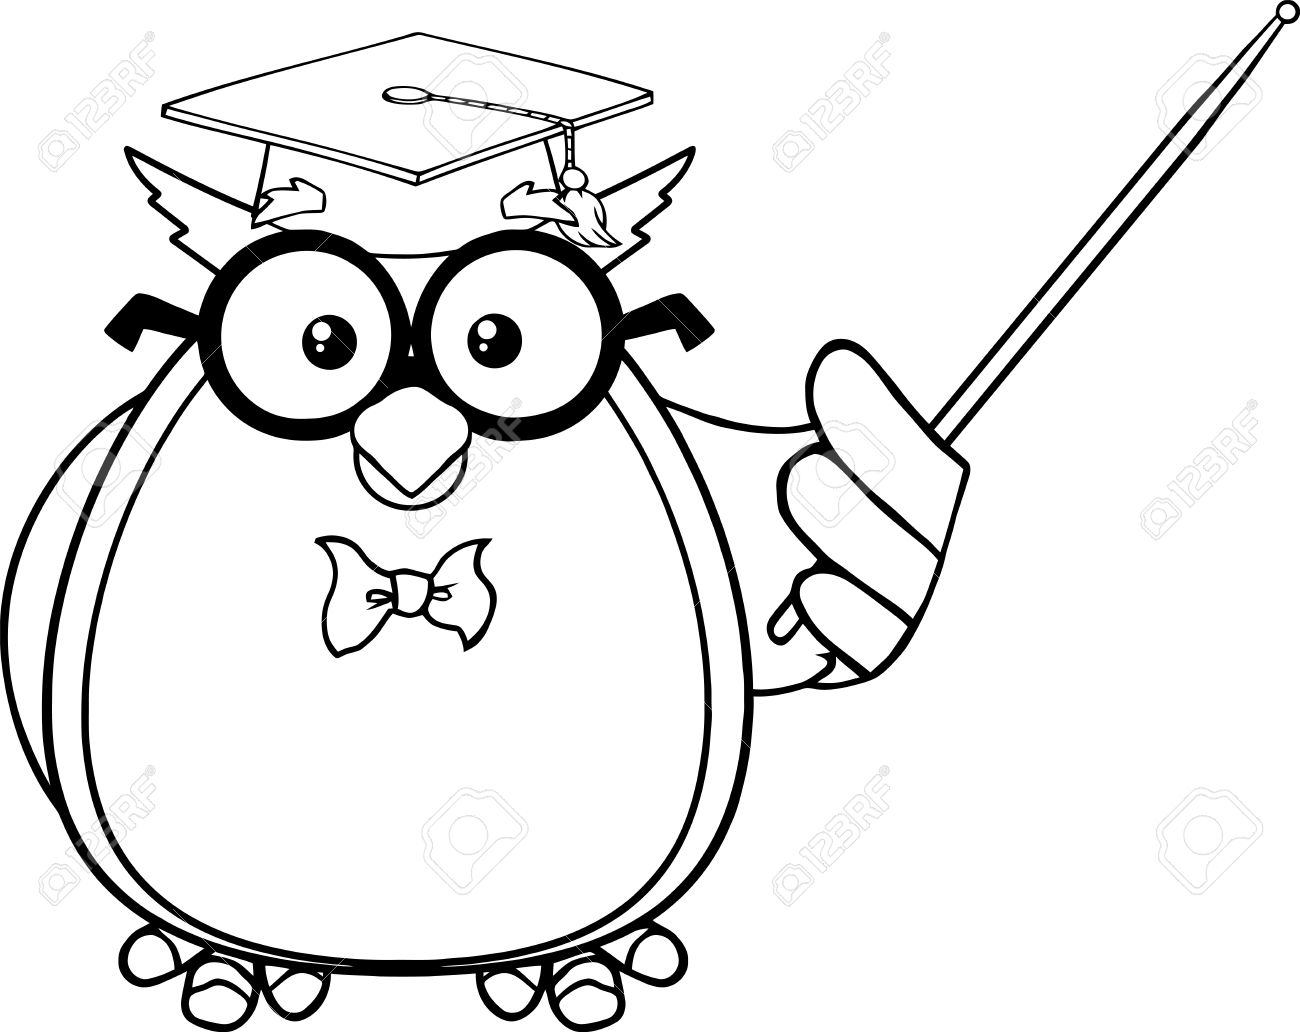 1300x1032 Black And White Wise Owl Teacher Cartoon Mascot Character